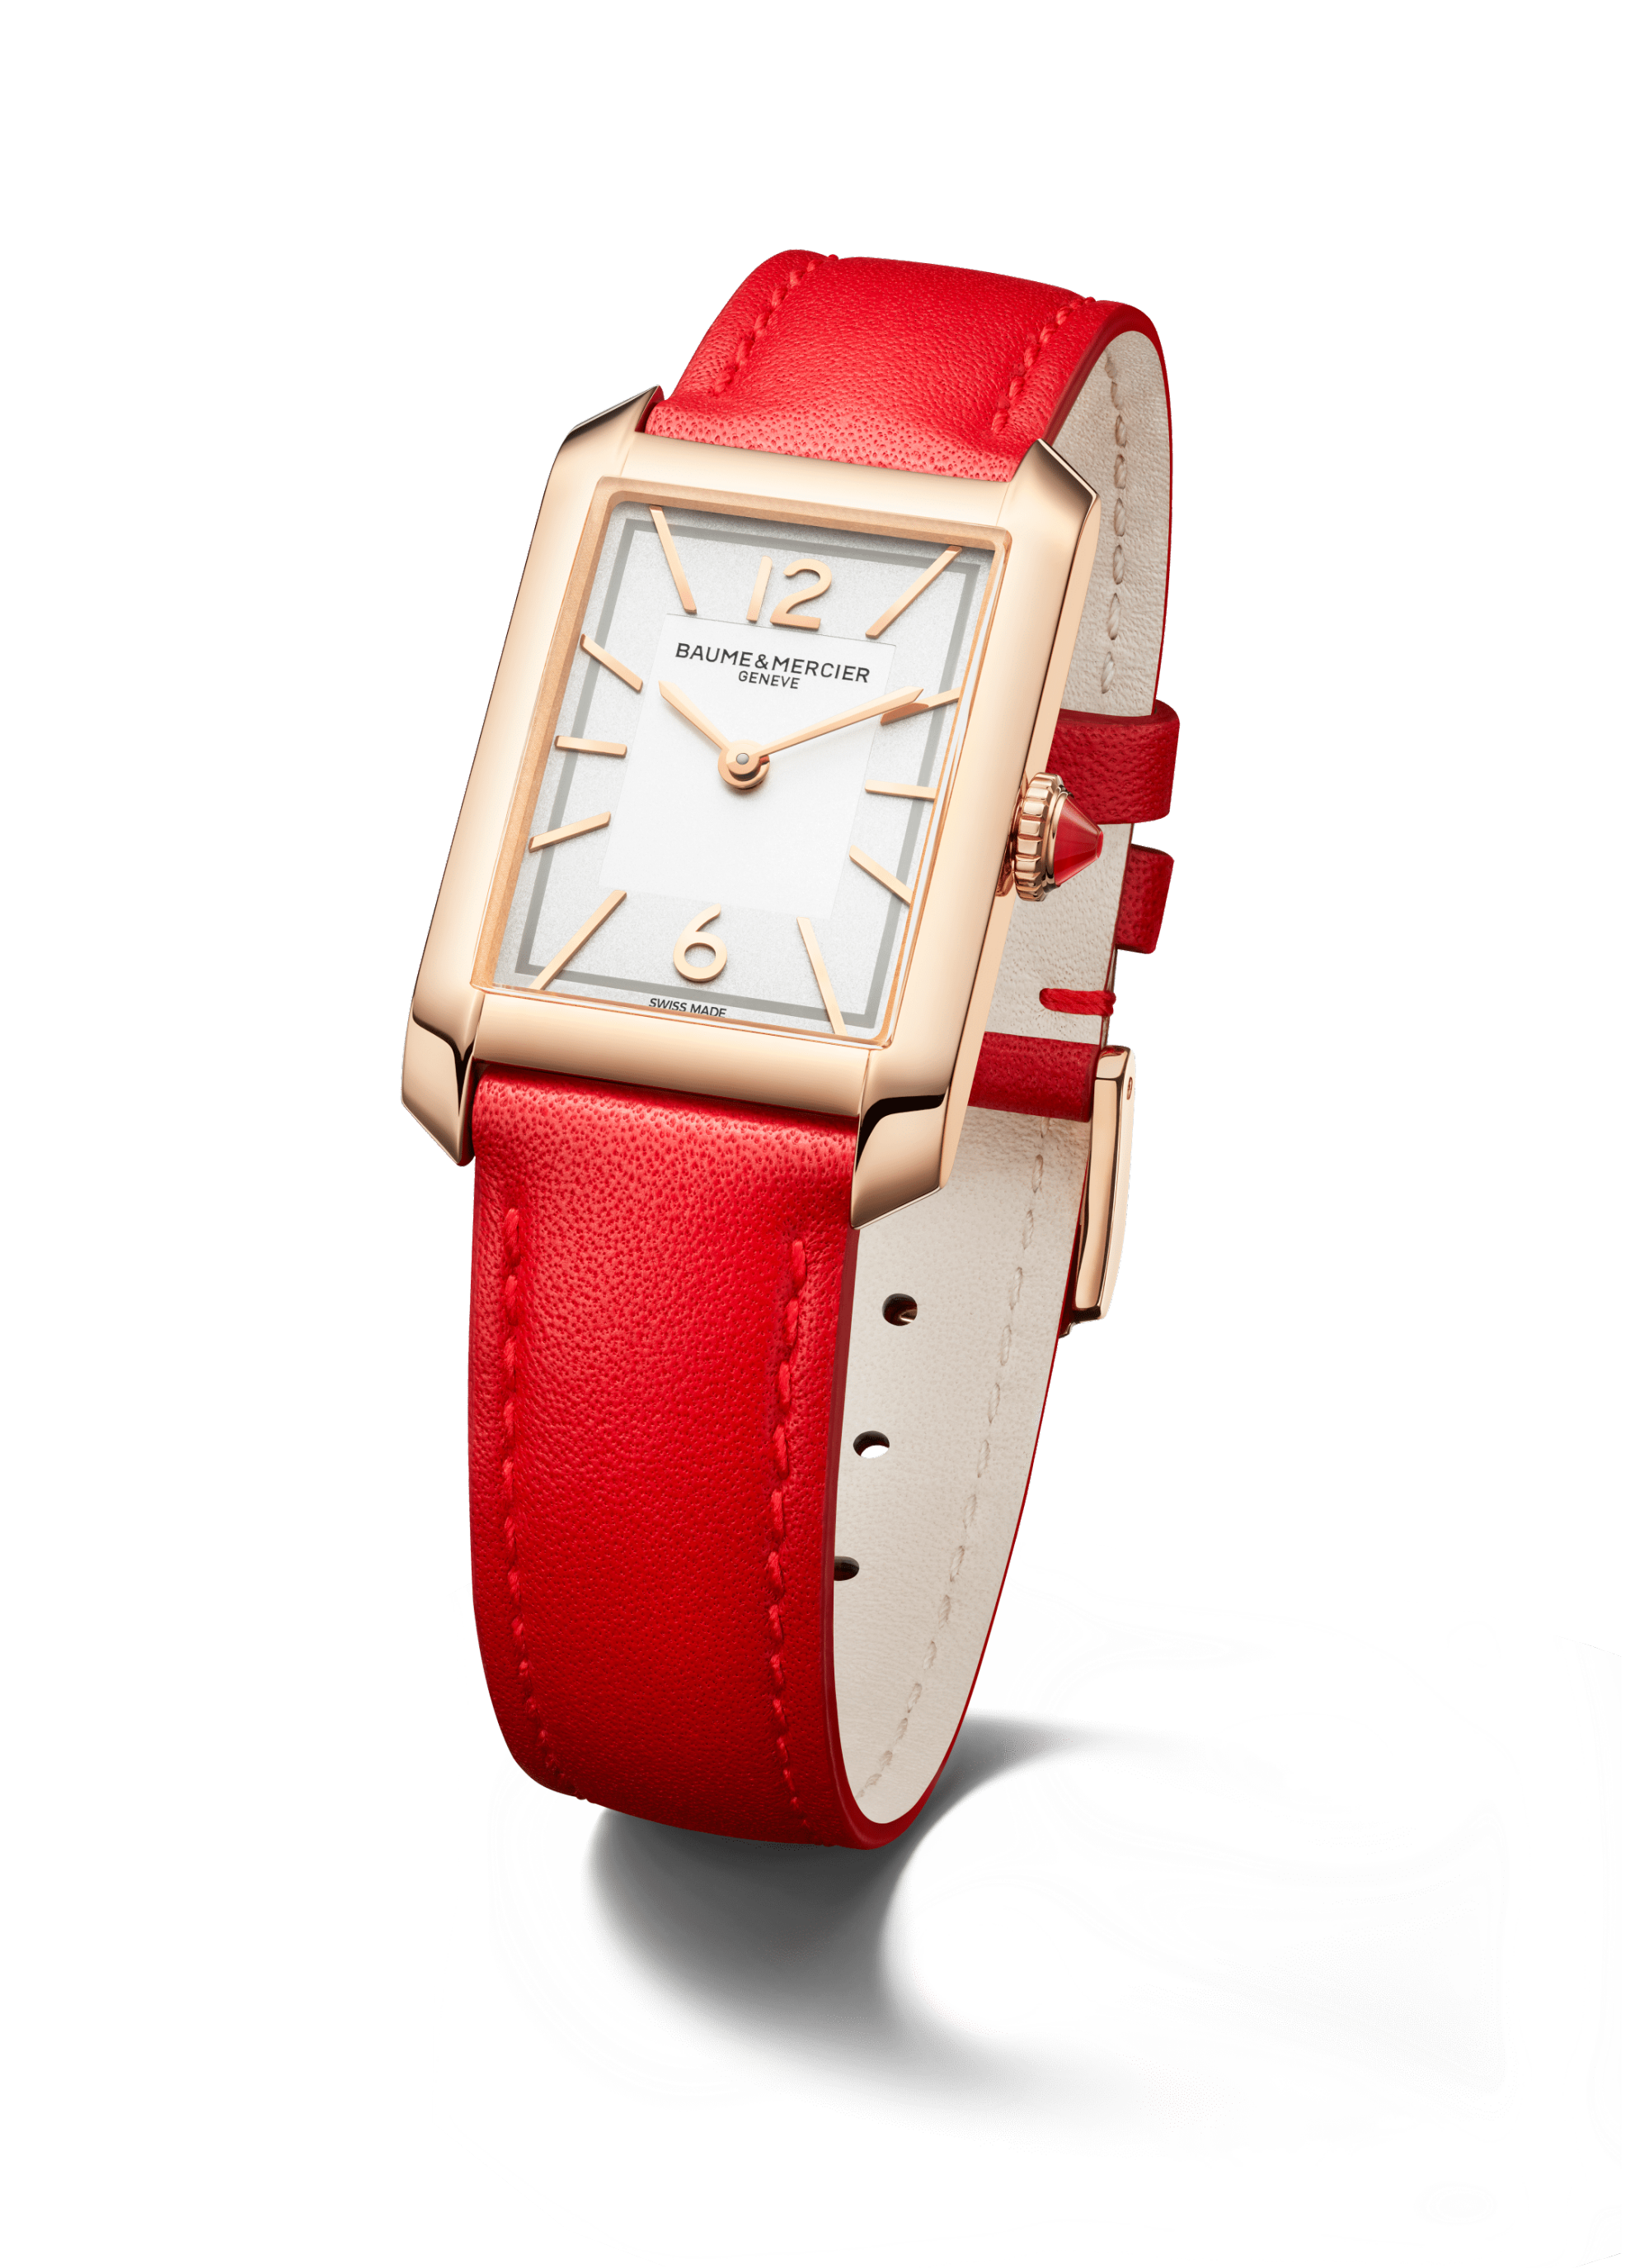 Hampton 10628 Watch for ladies | Check Prices on Baume & Mercier alternative -